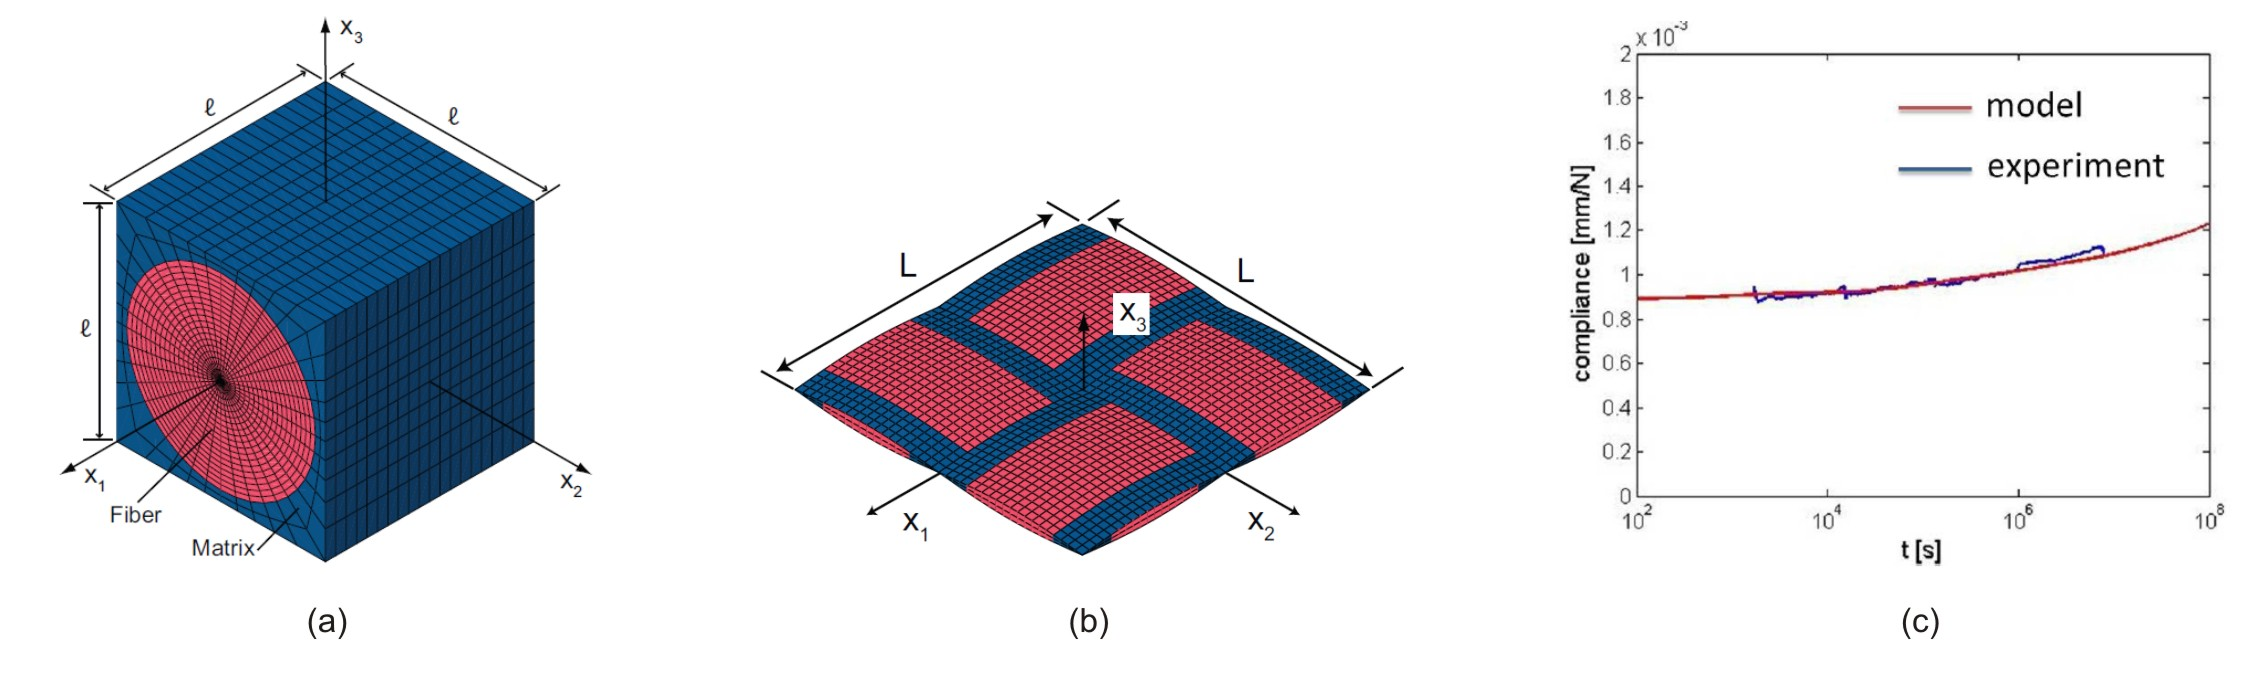 Finite-element model of the tow unit cell (a) and the lamina unit cell (b).  Longitudinal stretching compliance of a plaine-weave lamina at 40°C.